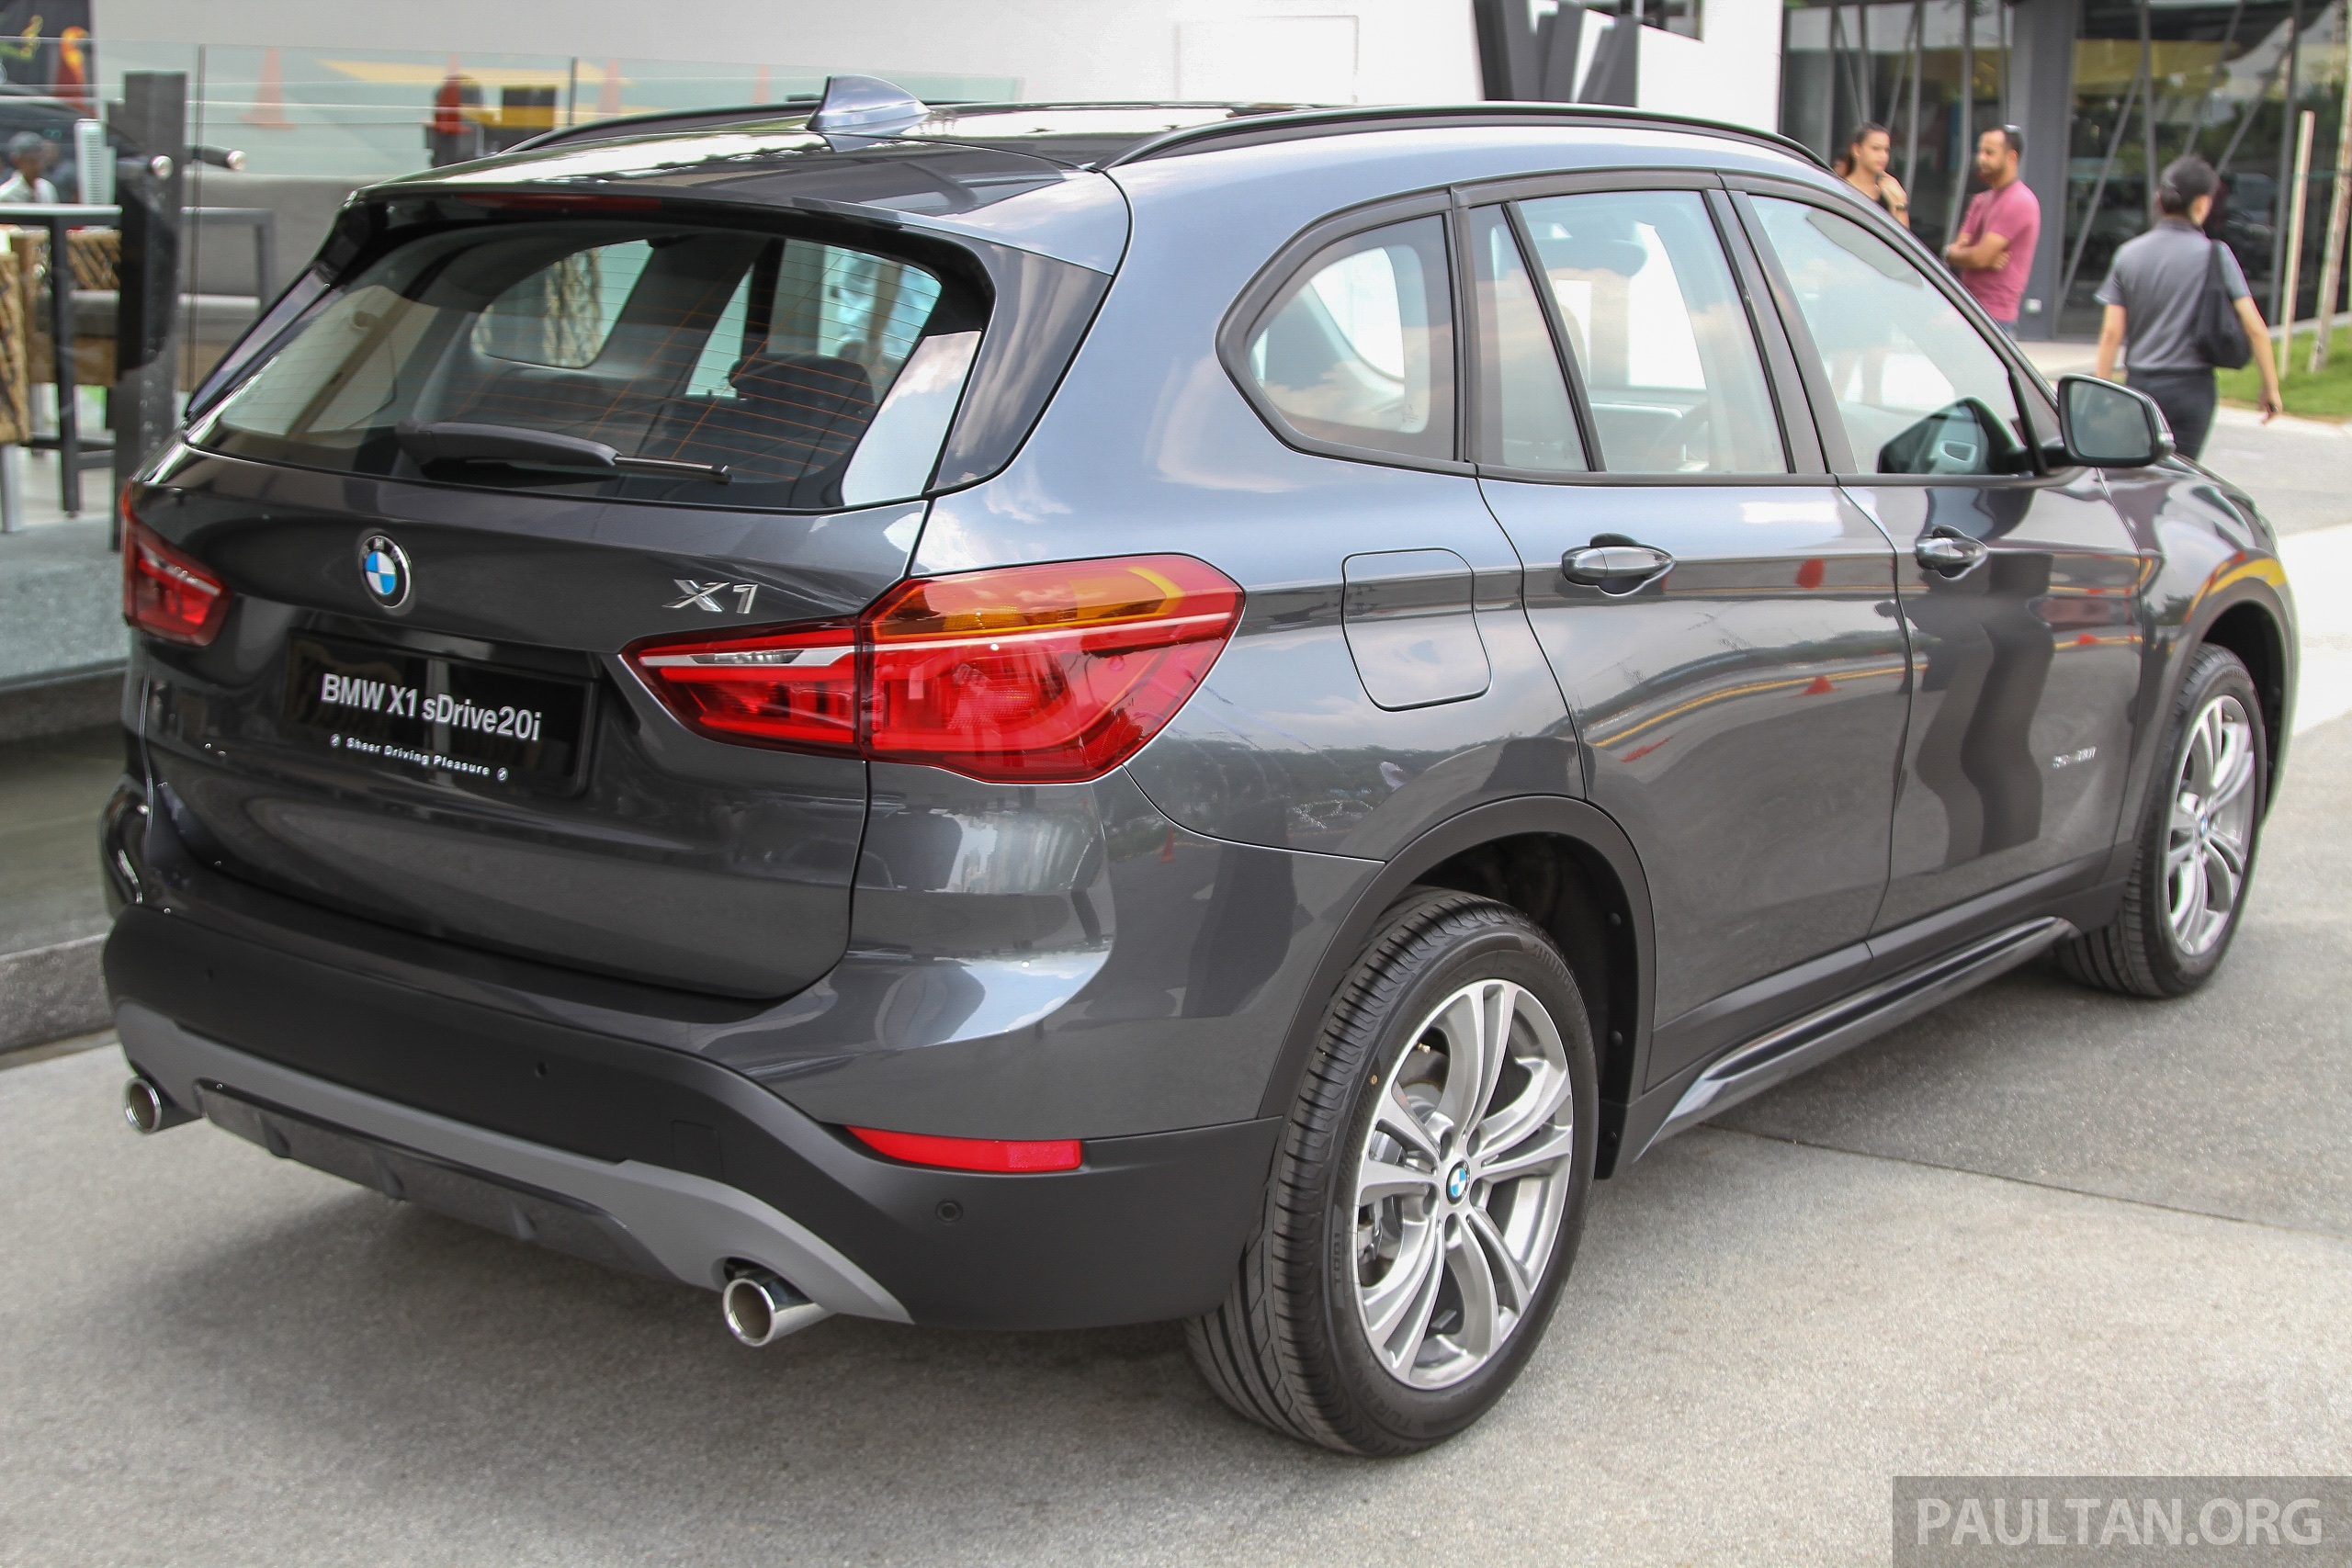 f48 bmw x1 sdrive20i launched in m sia rm280k image 390306. Black Bedroom Furniture Sets. Home Design Ideas